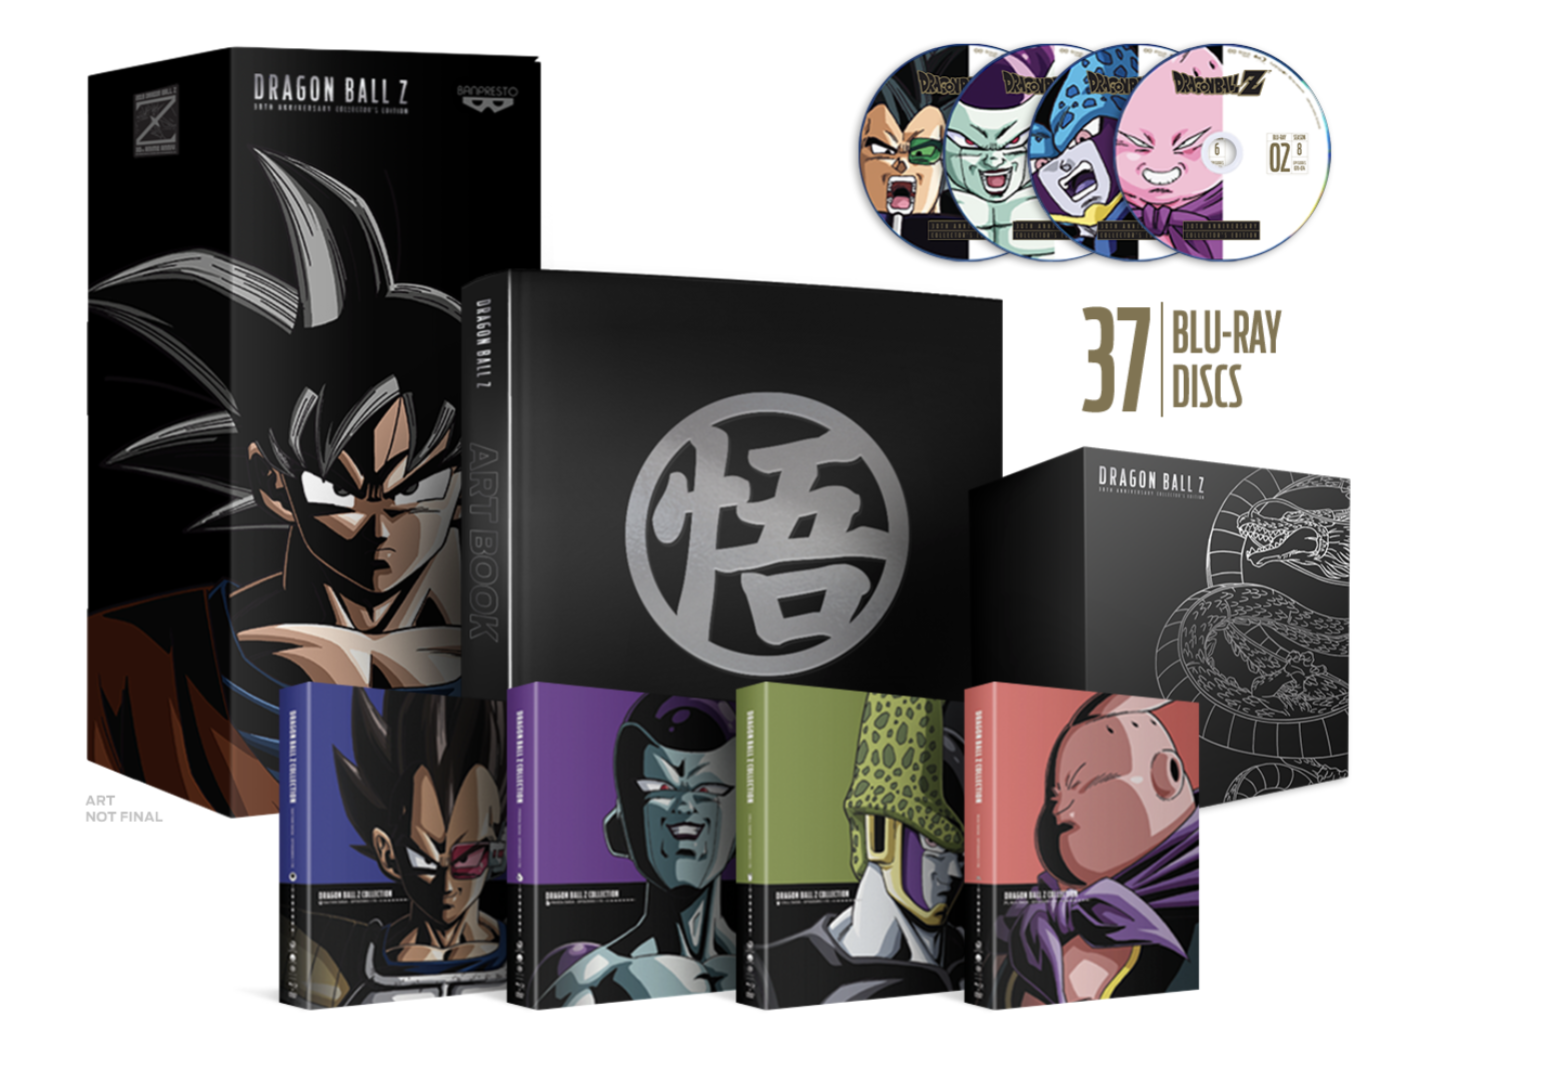 30TH ANNIVERSARY COLLECTOR'S EDITION OF DRAGON BALL Z NOW AVAILABLE TO PRE-ORDER!